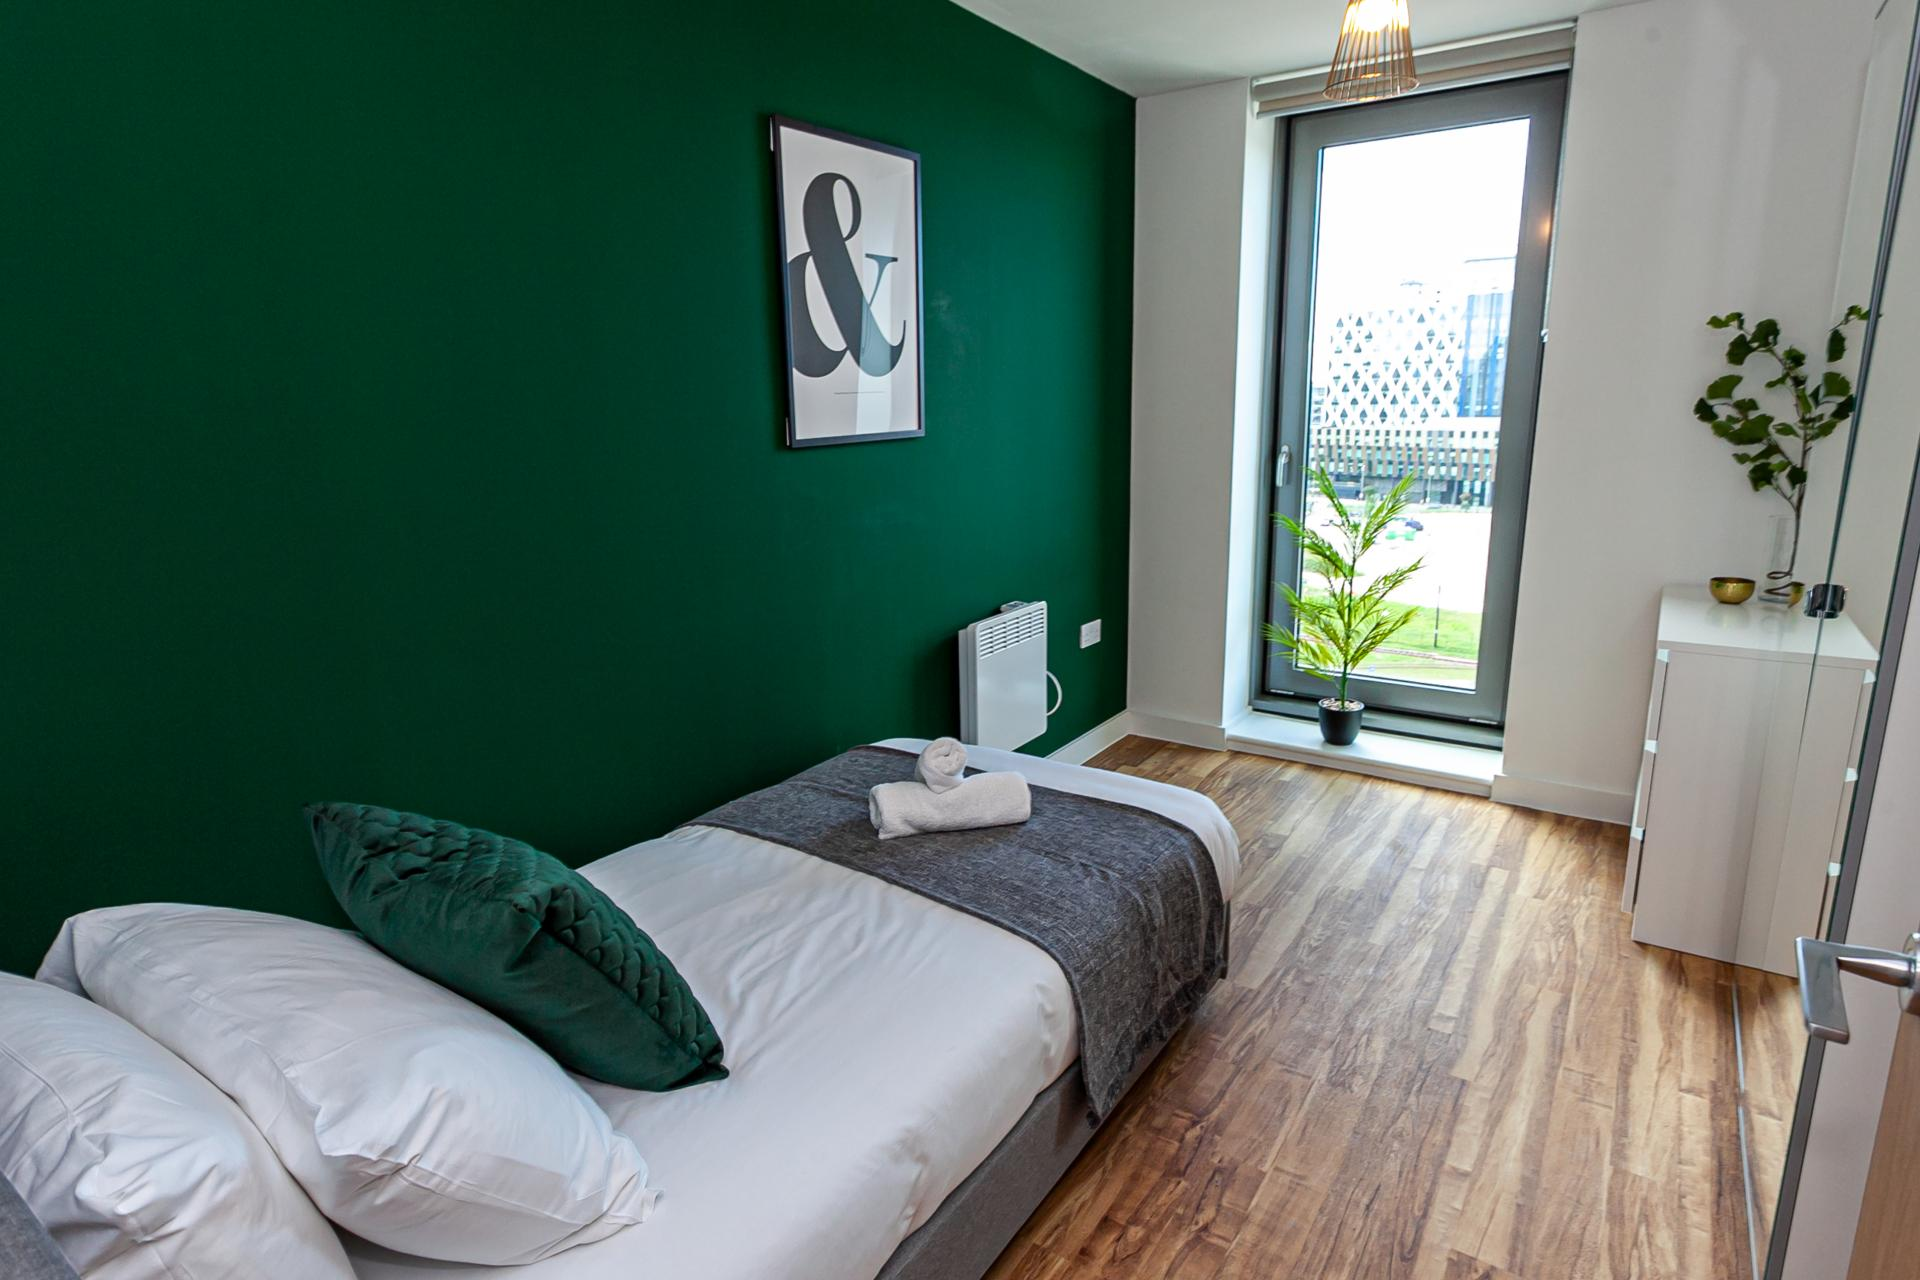 Single bed at Michigan Point Tower, Ordsall, Manchester - Citybase Apartments